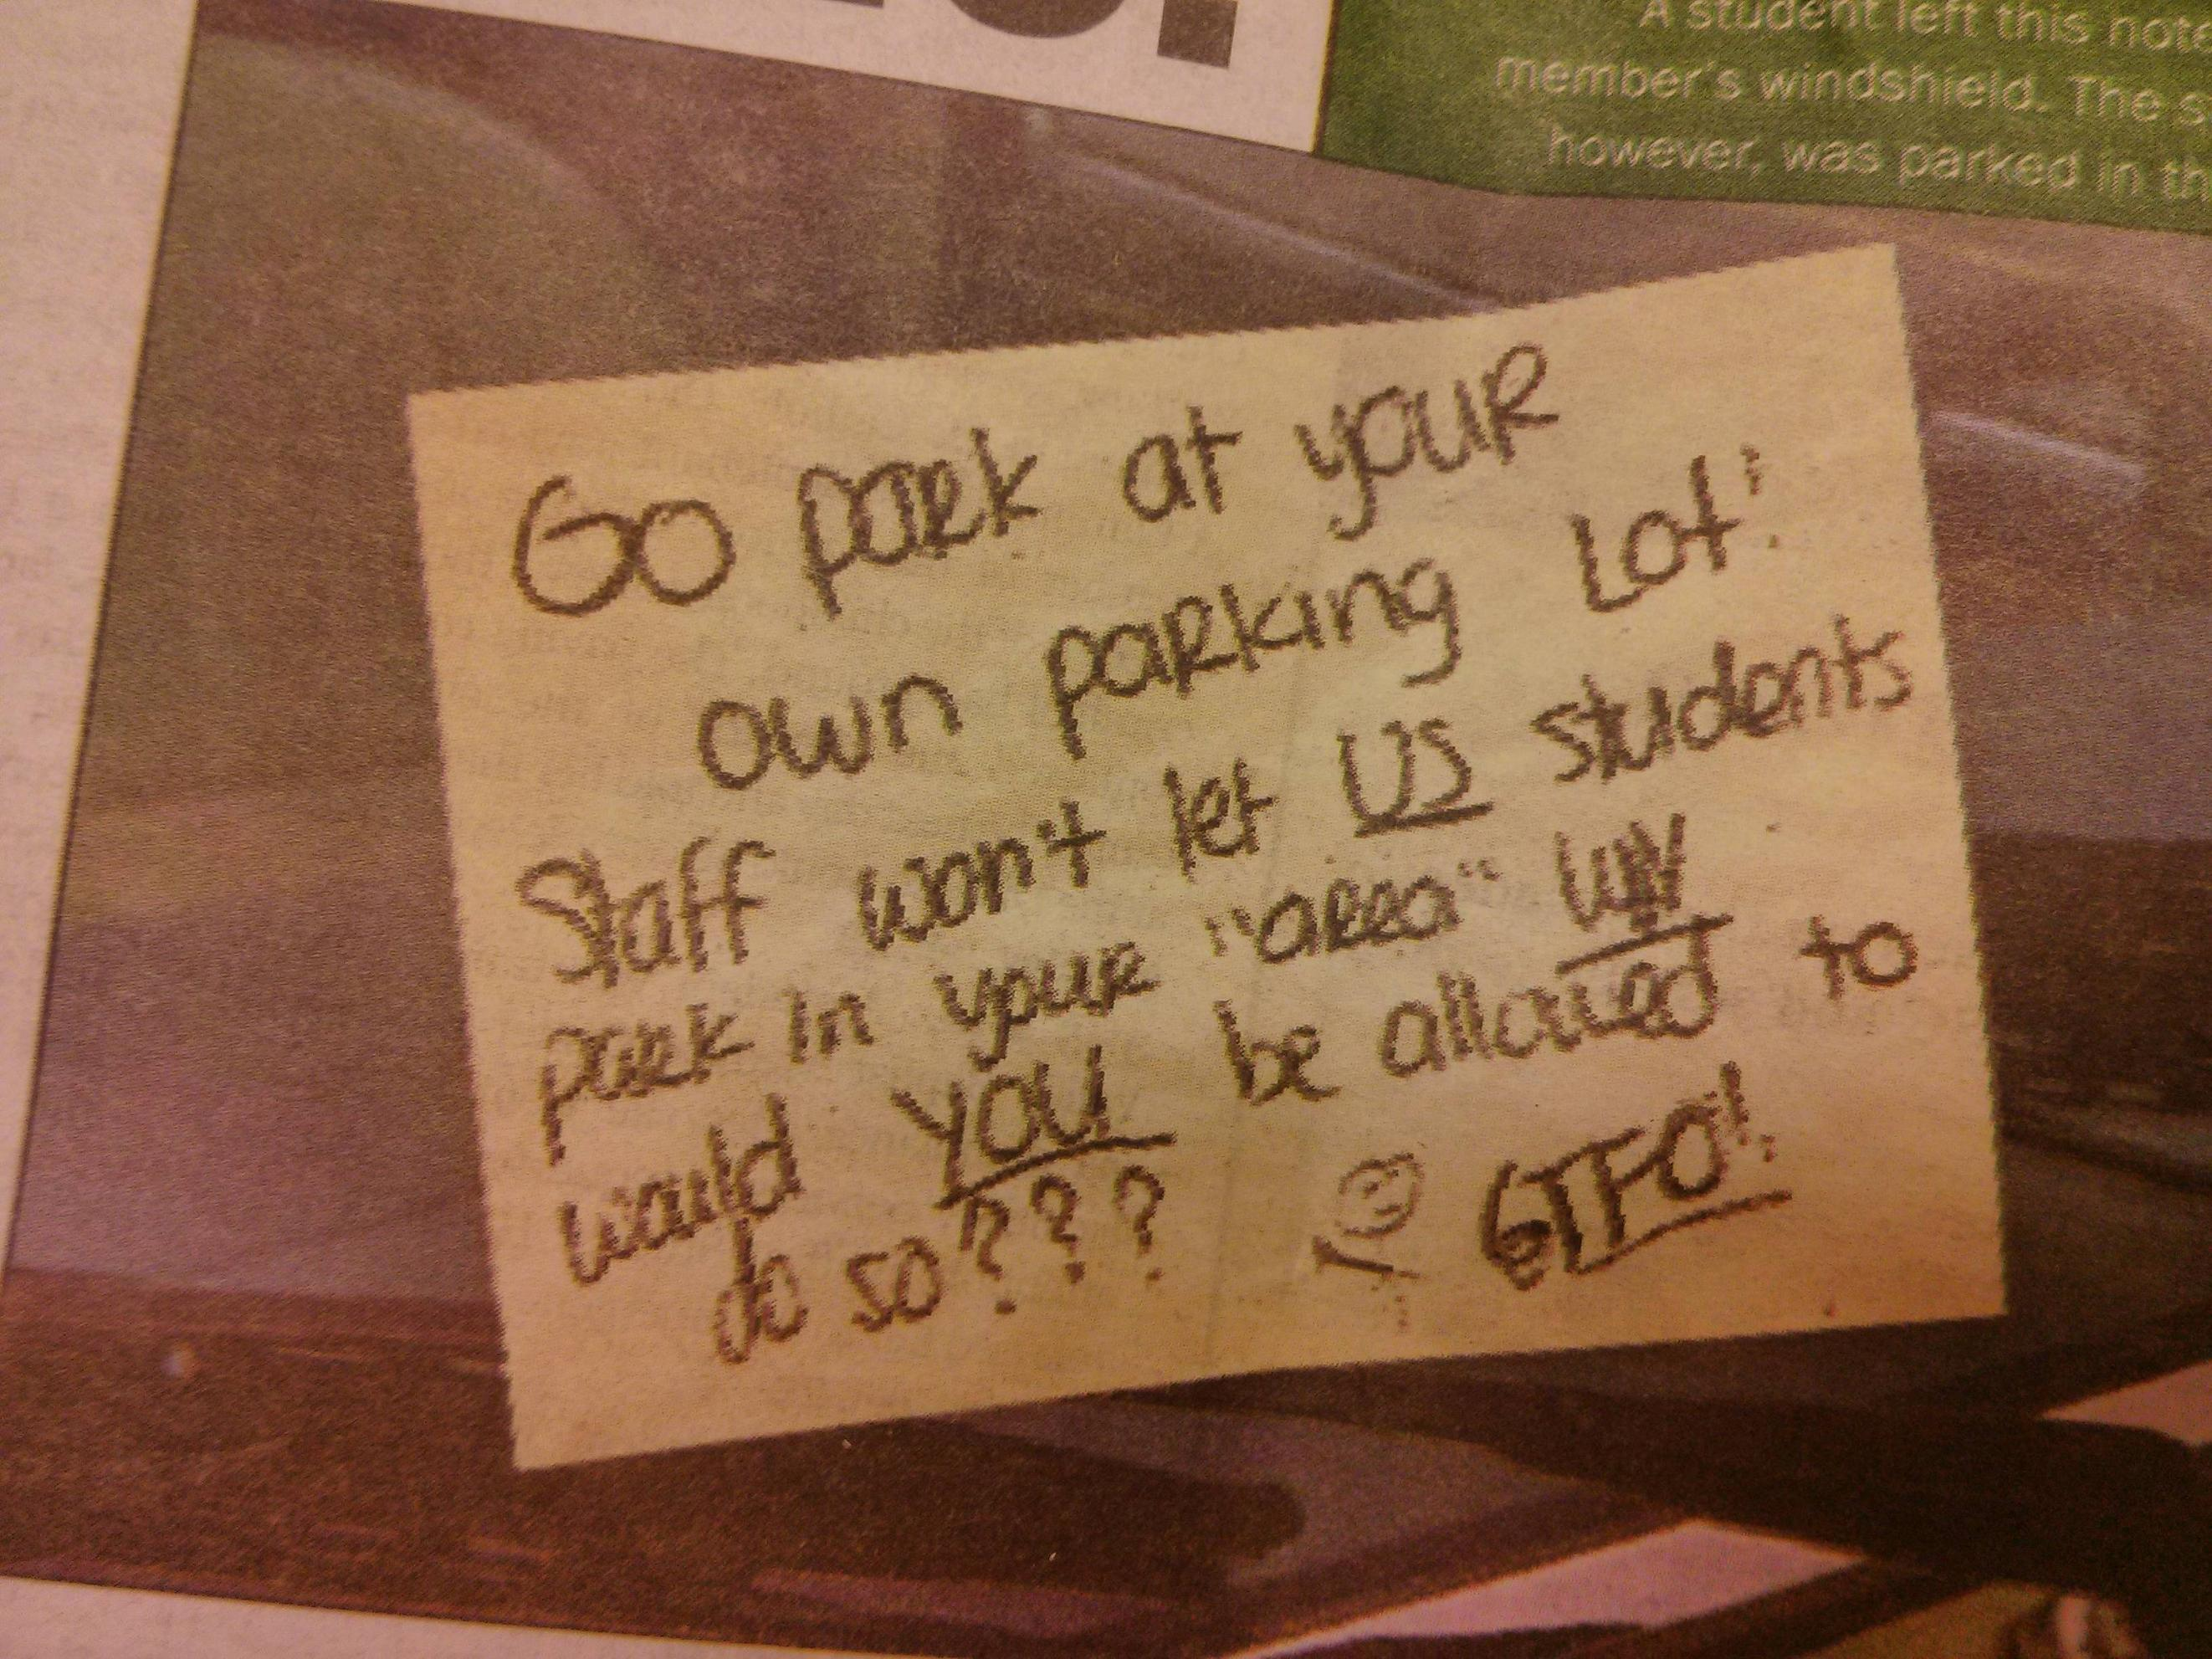 Student's furious parking note to professor makes it into school paper.